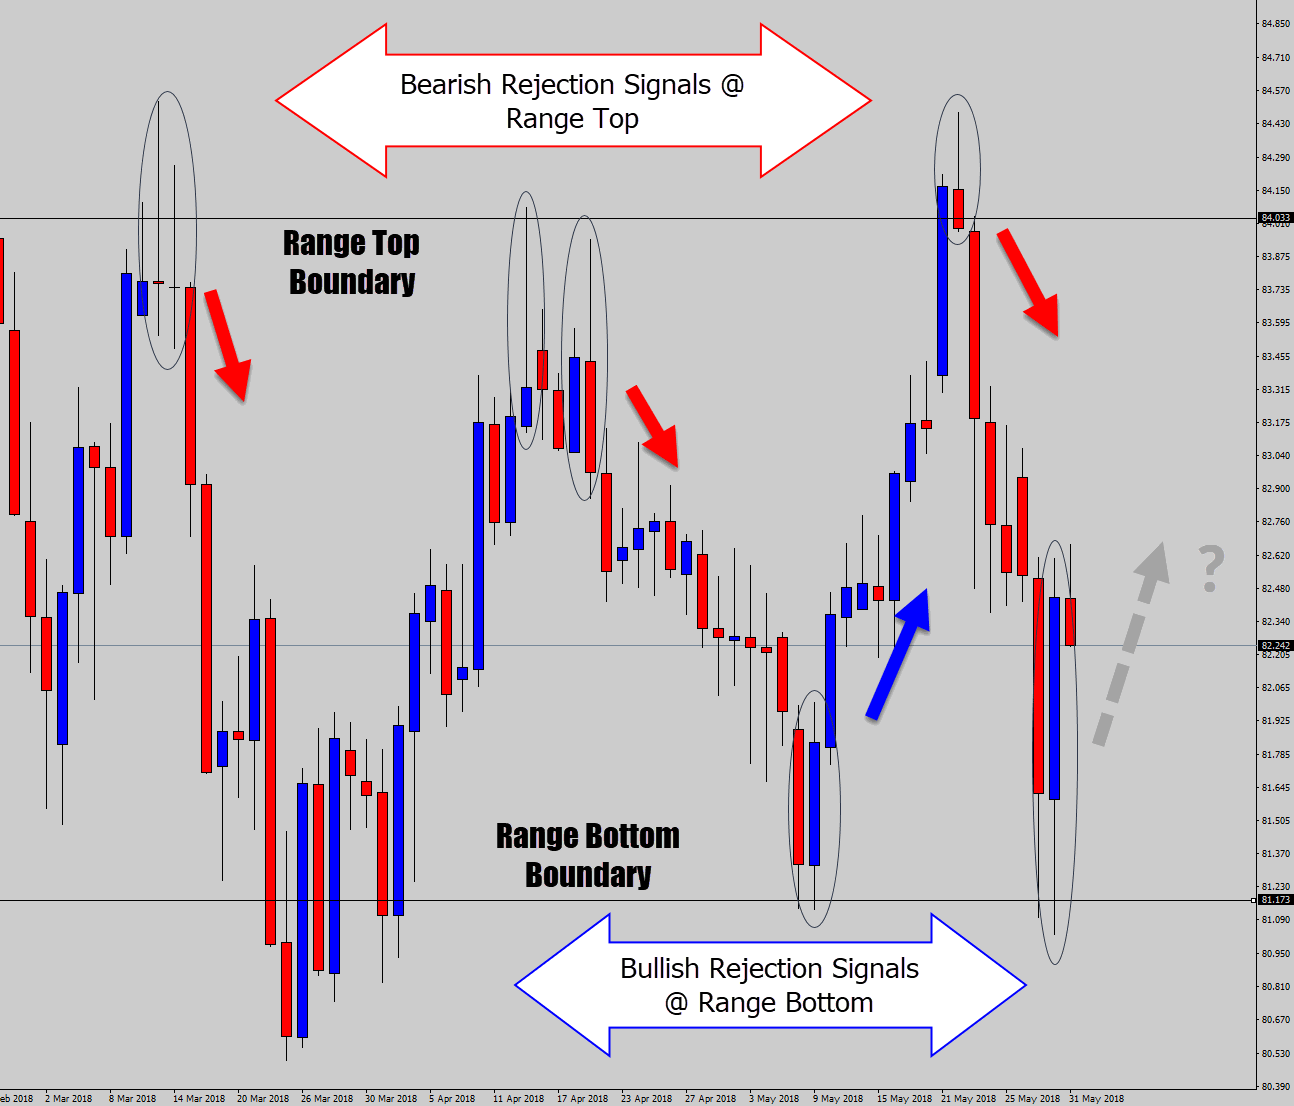 an overview of ranging market signals